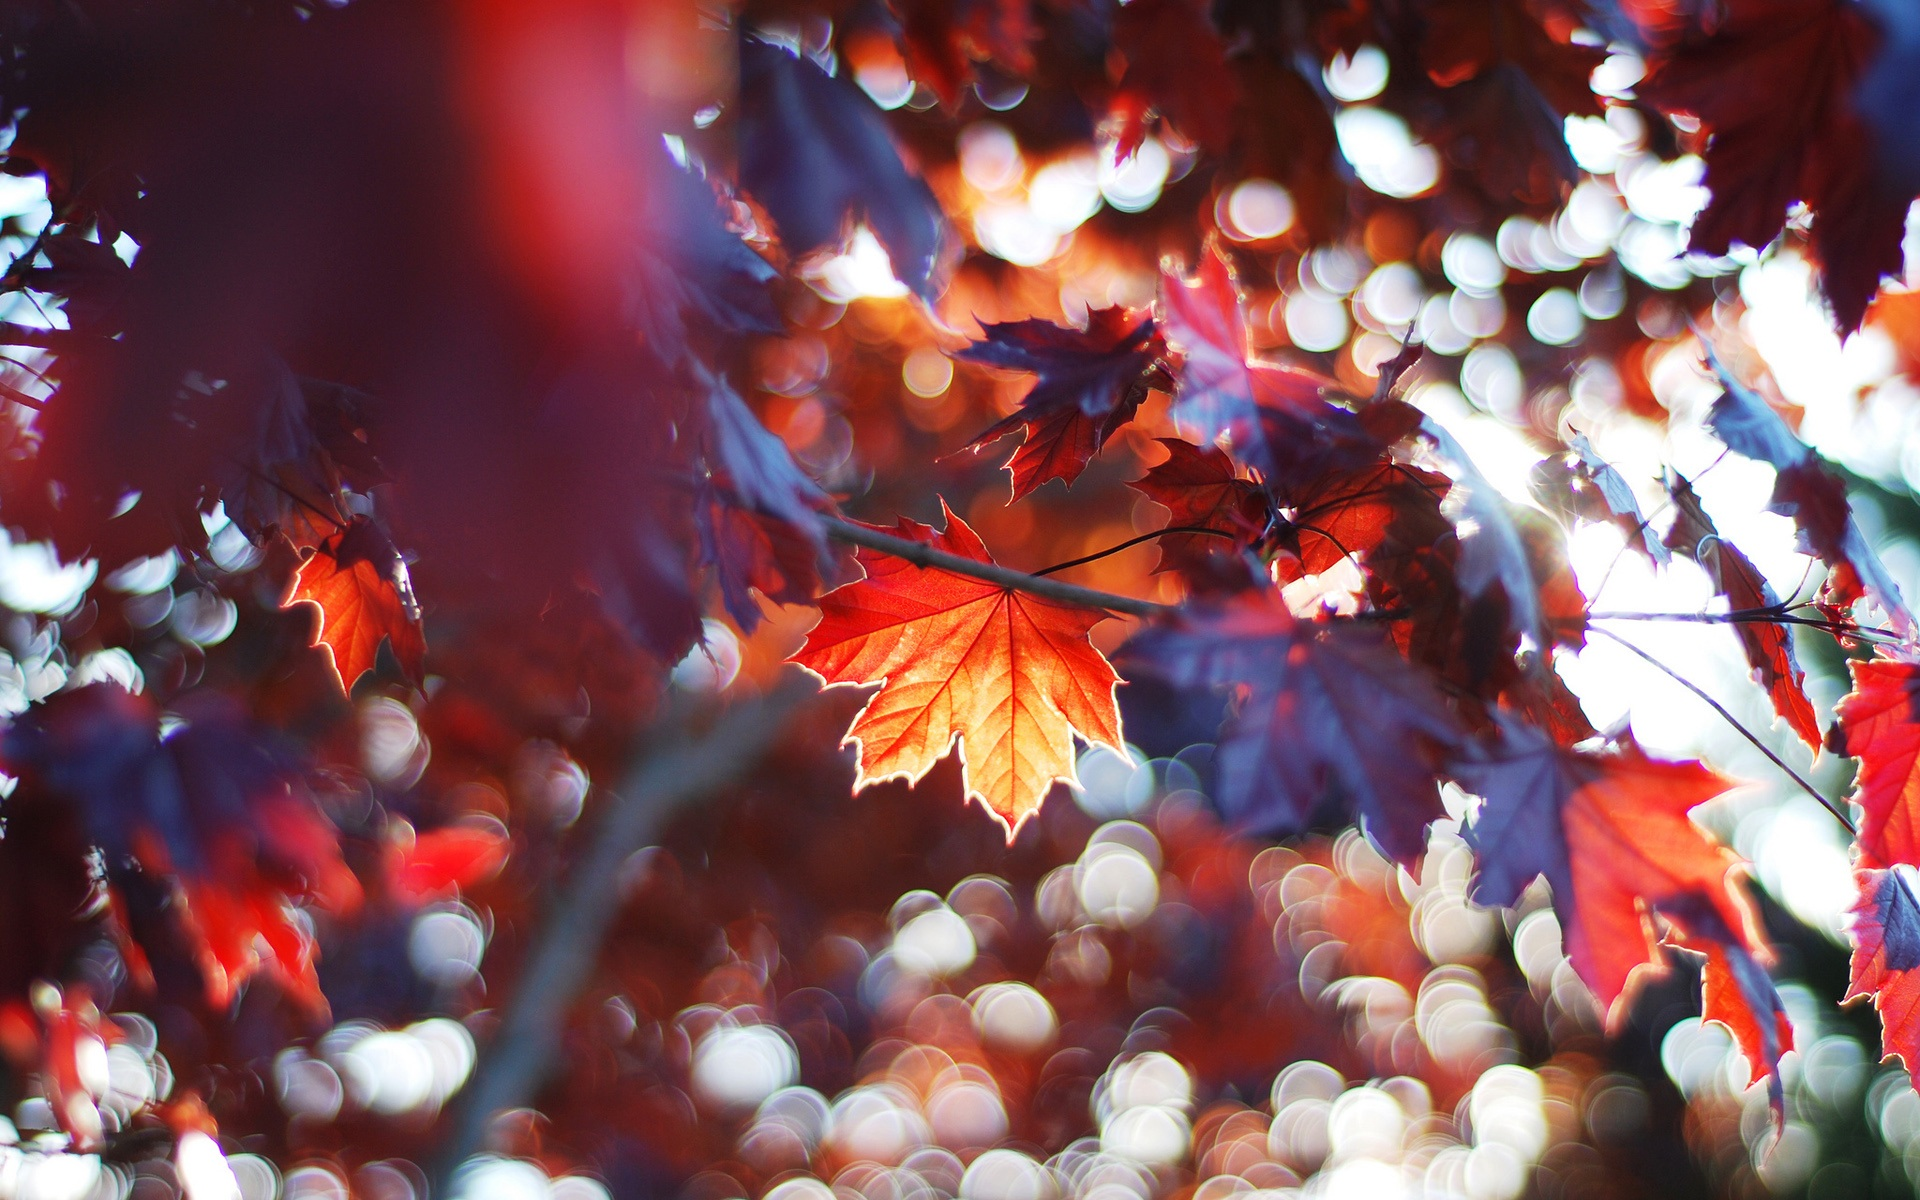 Wallpaper Autumn Leaves Red Maple Leaves 1920x1200 Hd